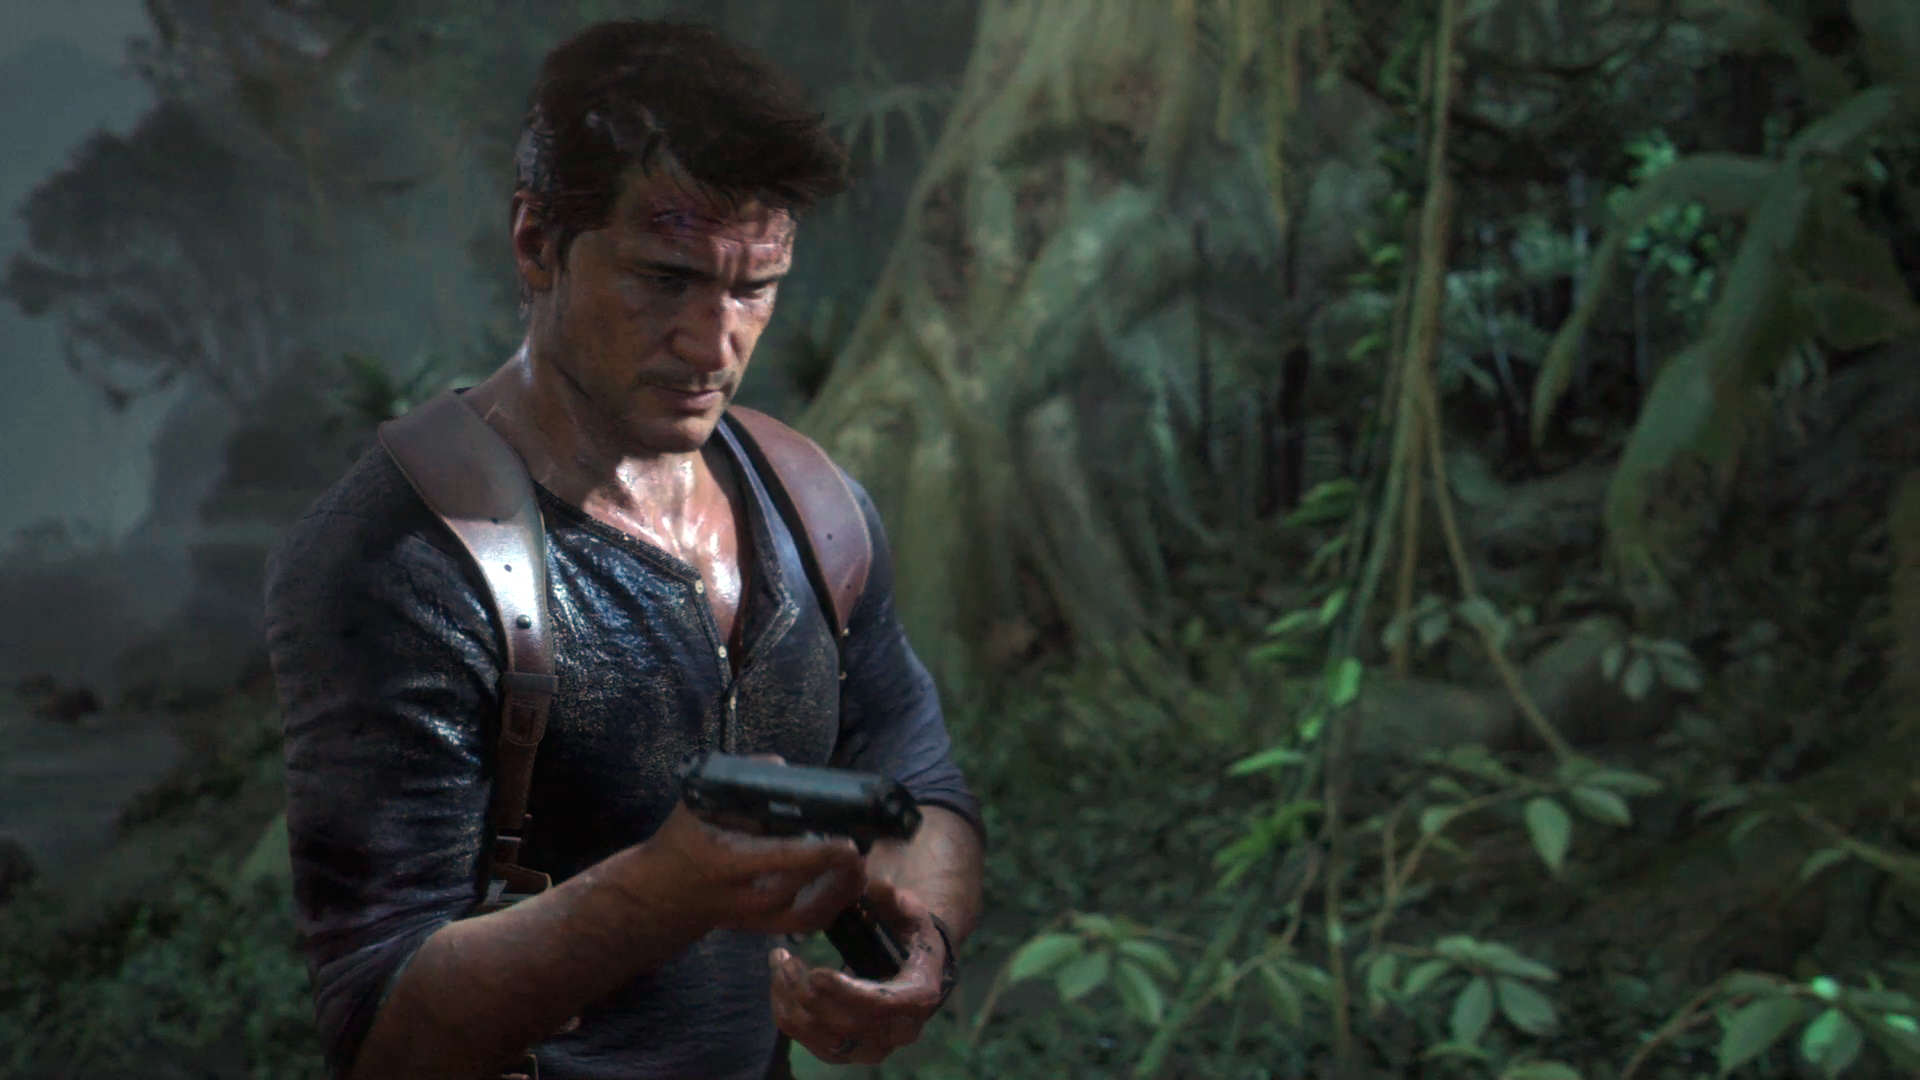 Take A Look Behind The Scenes Of Uncharted 4 In New Video uncharted 4